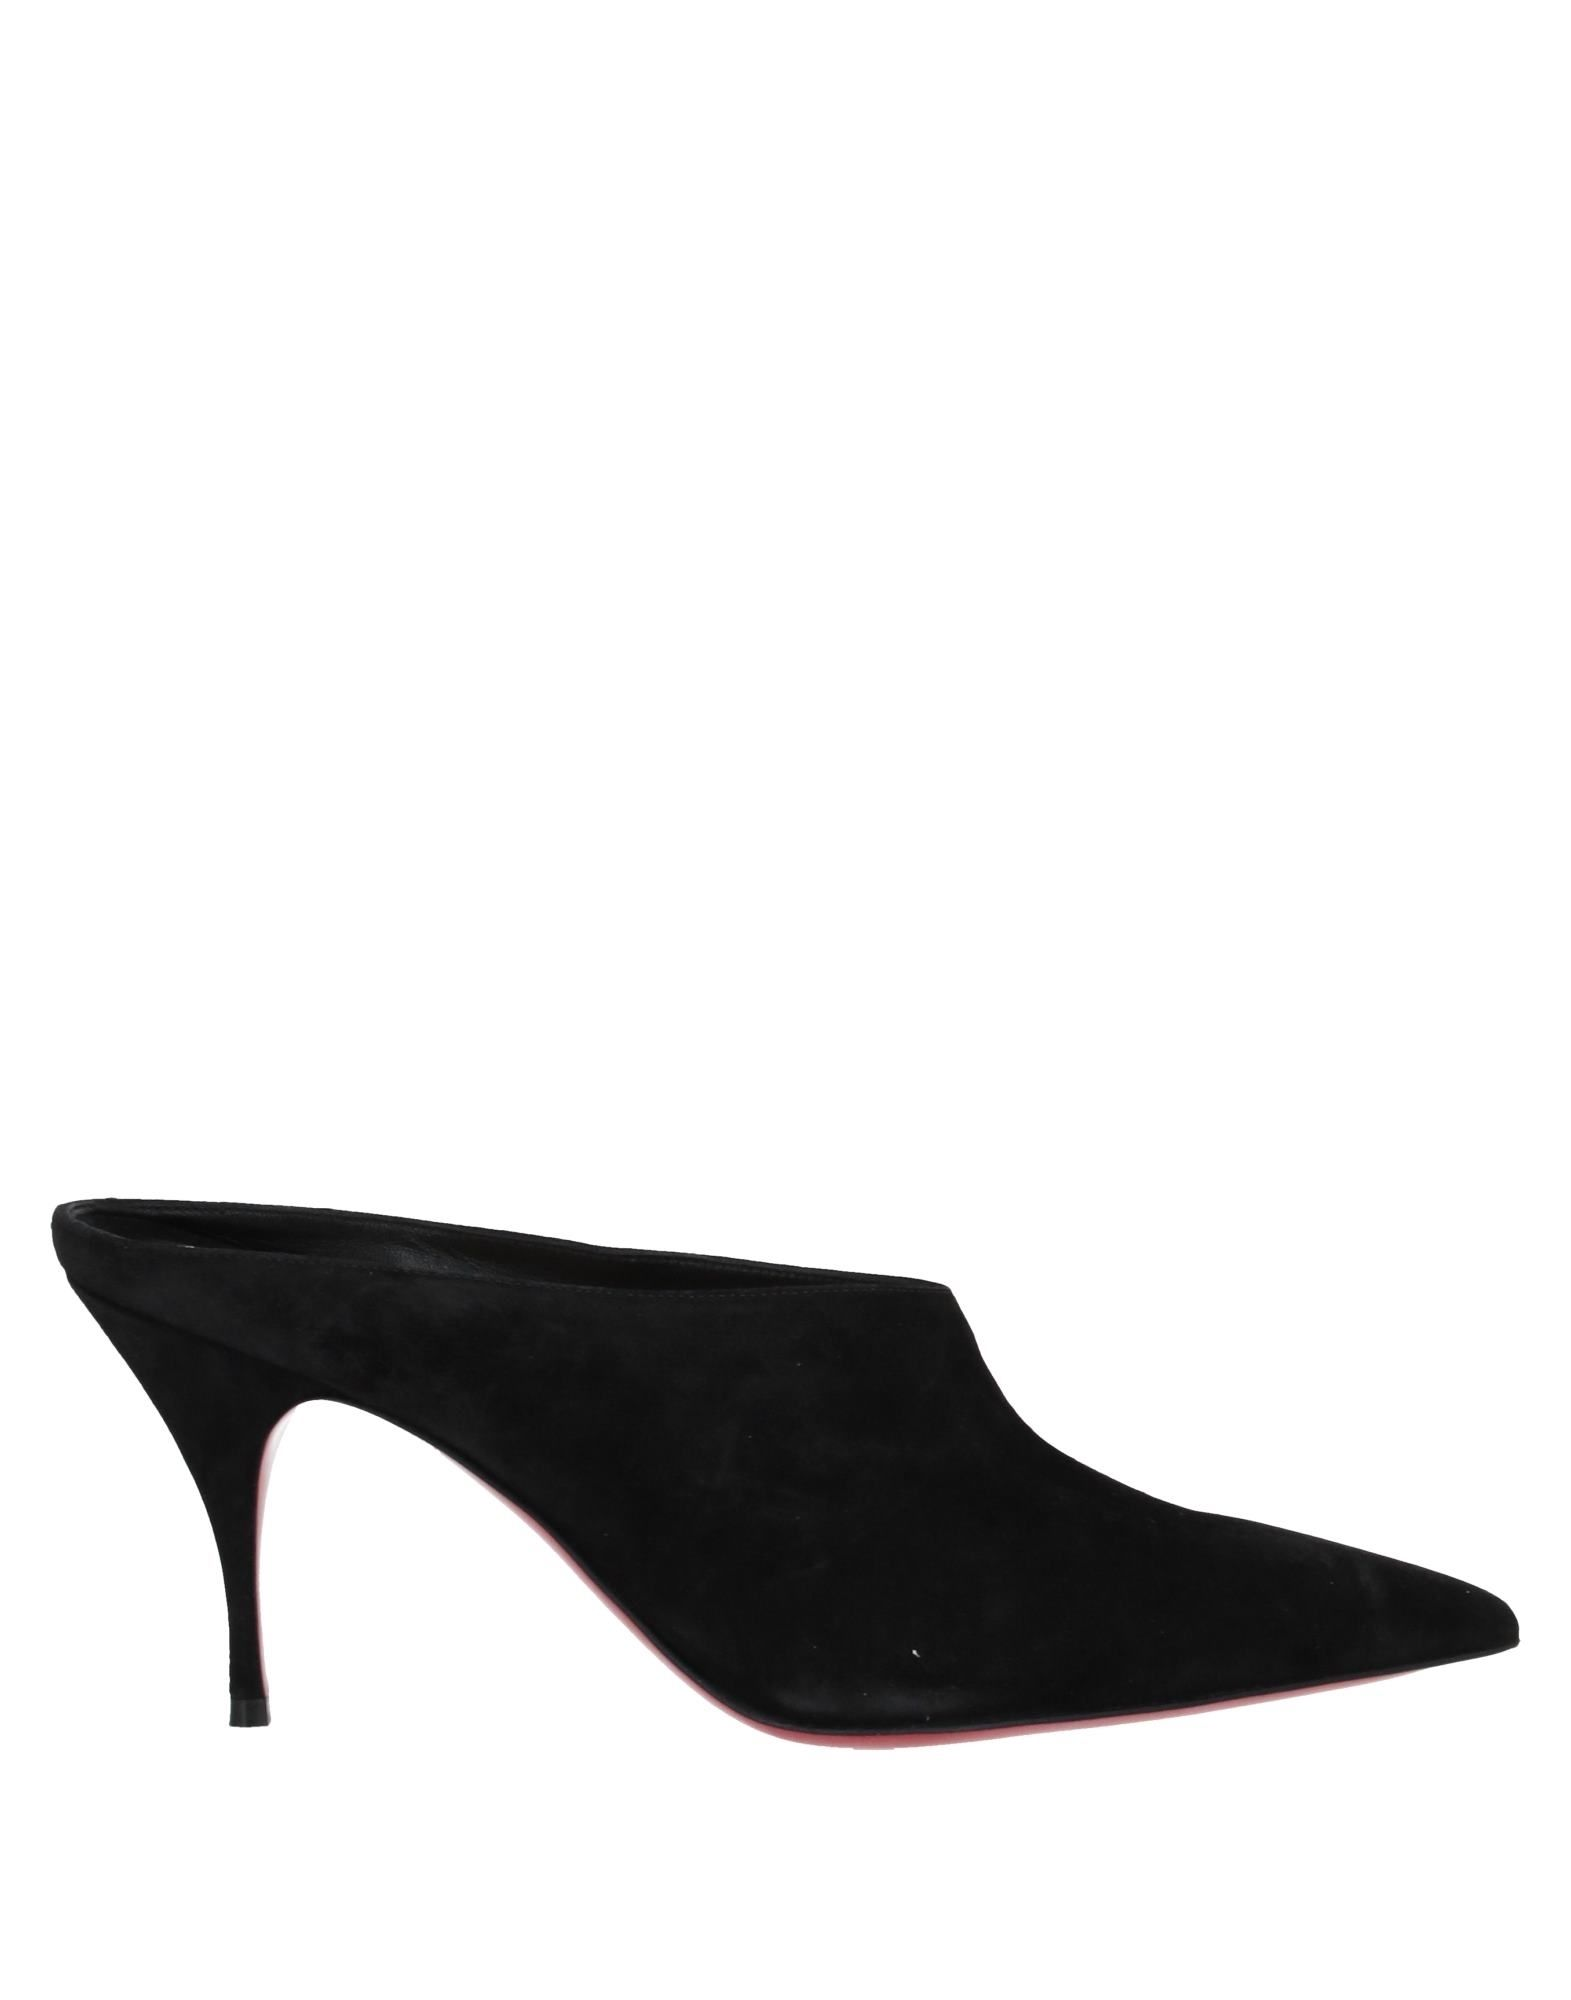 CHRISTIAN LOUBOUTIN Mules. suede effect, no appliqués, solid color, narrow toeline, spike heel, covered heel, leather lining, leather sole, contains non-textile parts of animal origin, small sized. Soft Leather